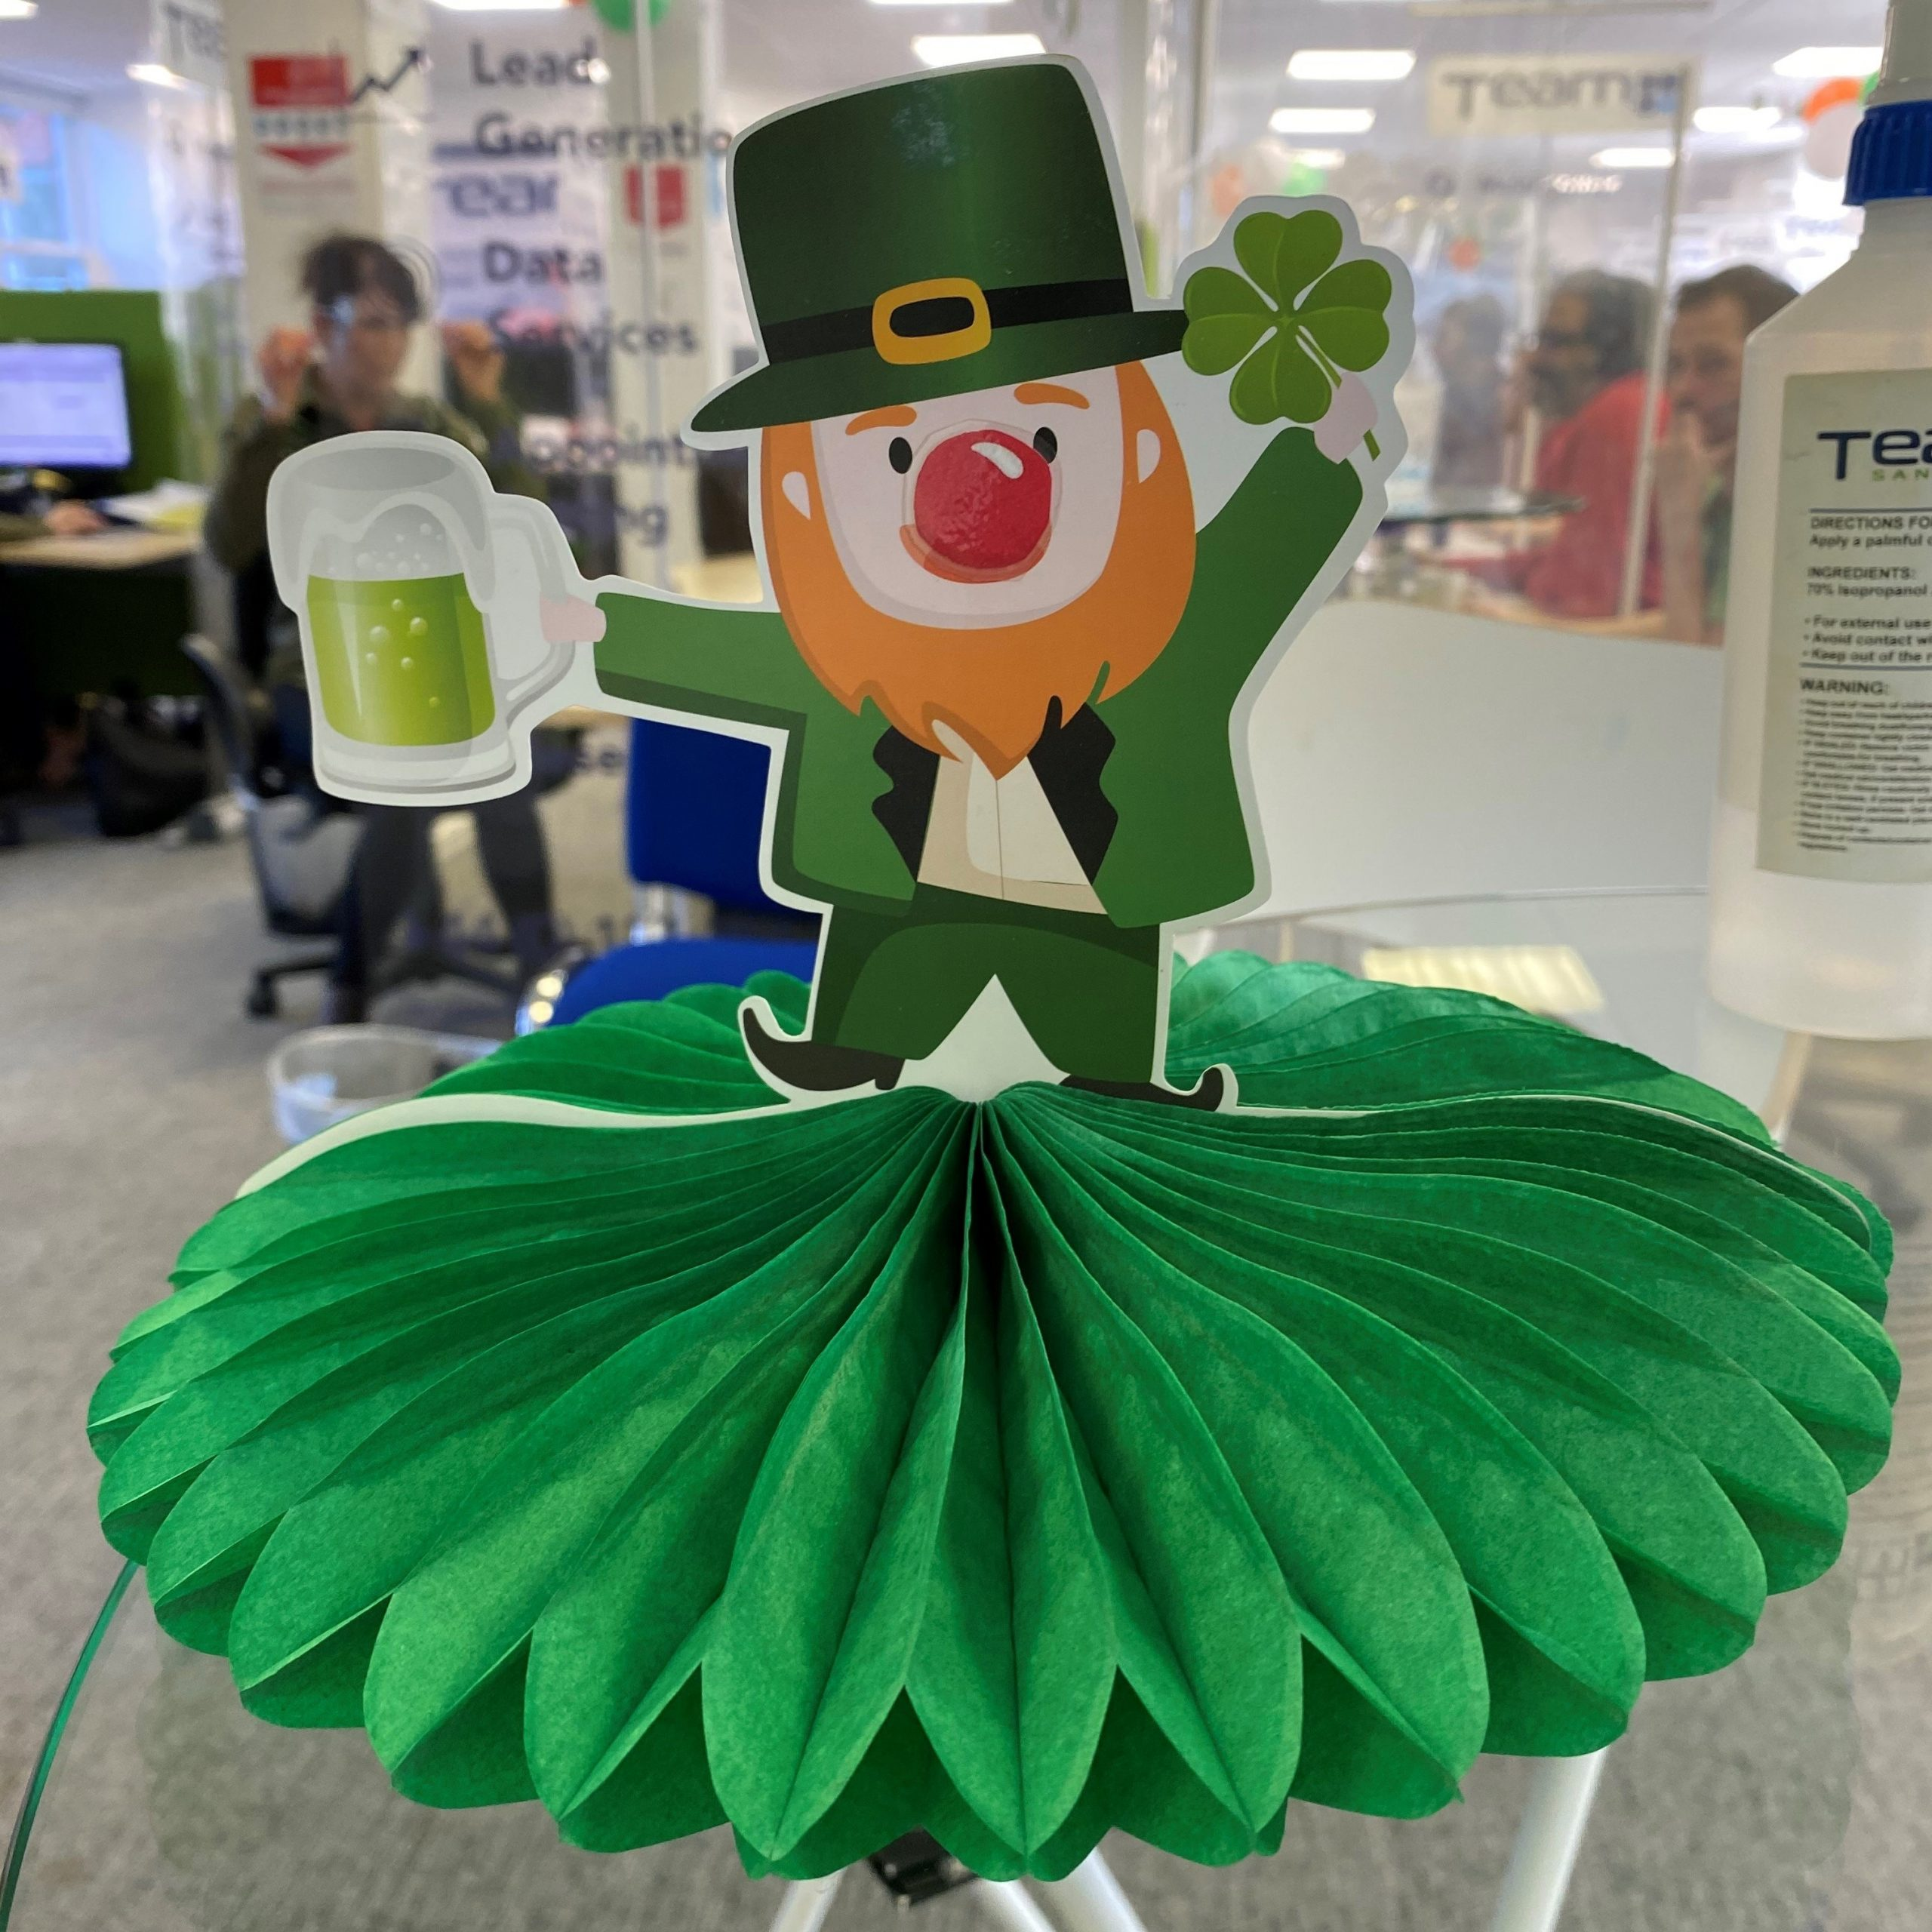 Team Telemarketing hold Leprechaun's Big Red Nose Day to raise funds for Charity partners